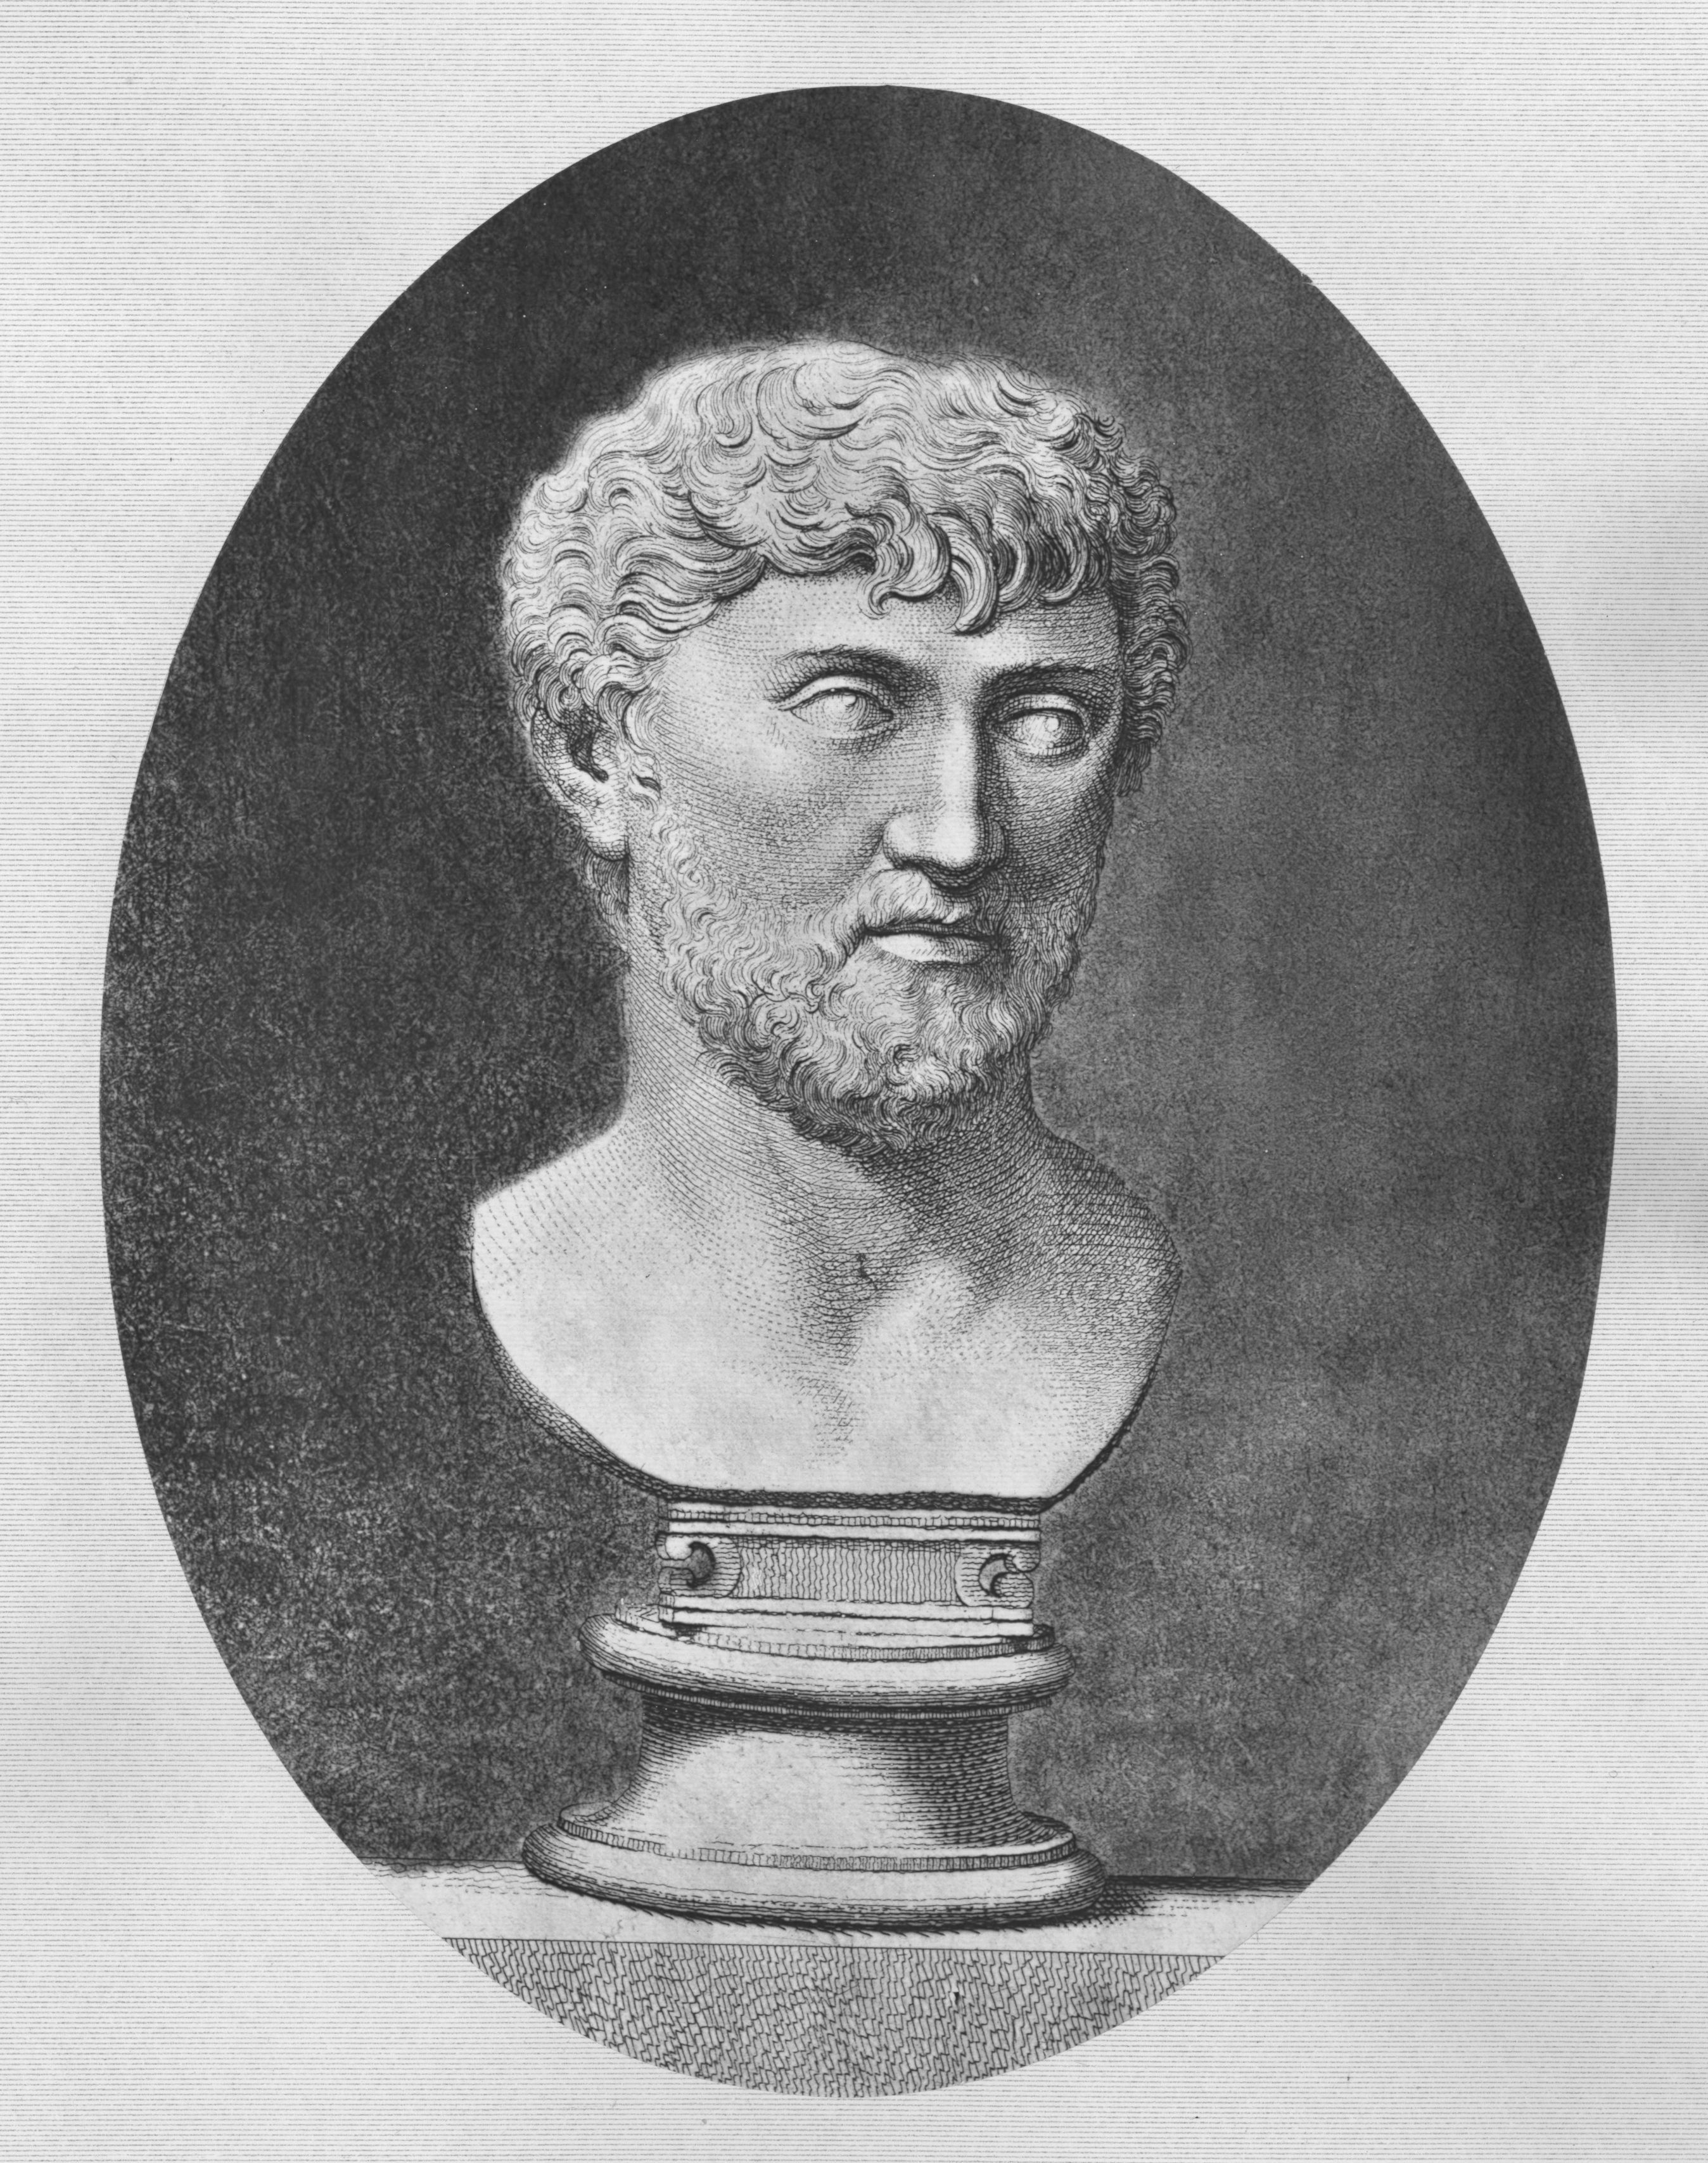 De rerum natura was written by the Roman poet Lucretius.